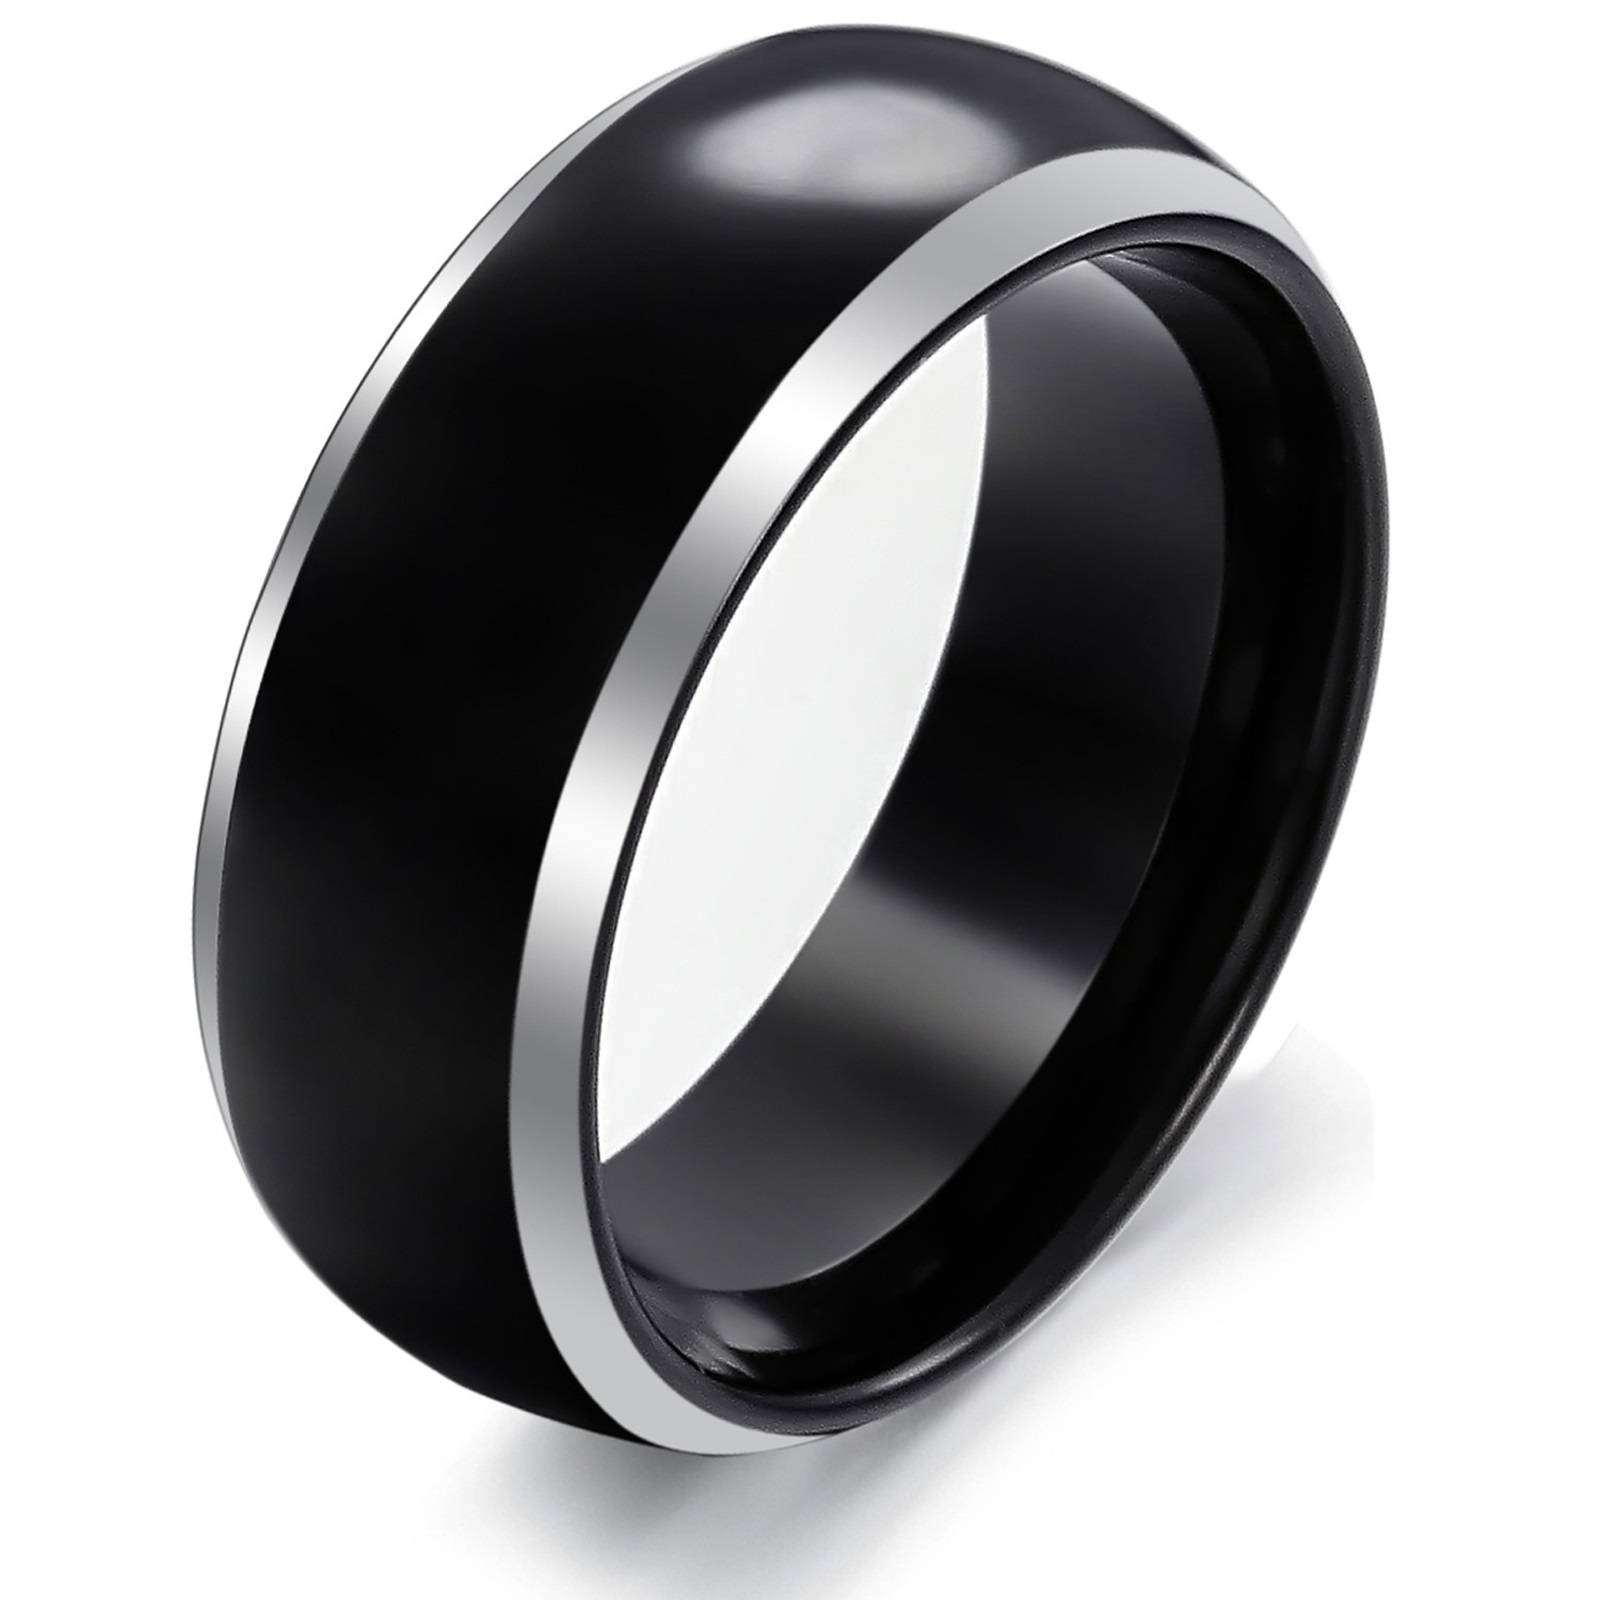 jewelry black com fit band pattern comfort rings baseball mens dp zirconium amazon wedding